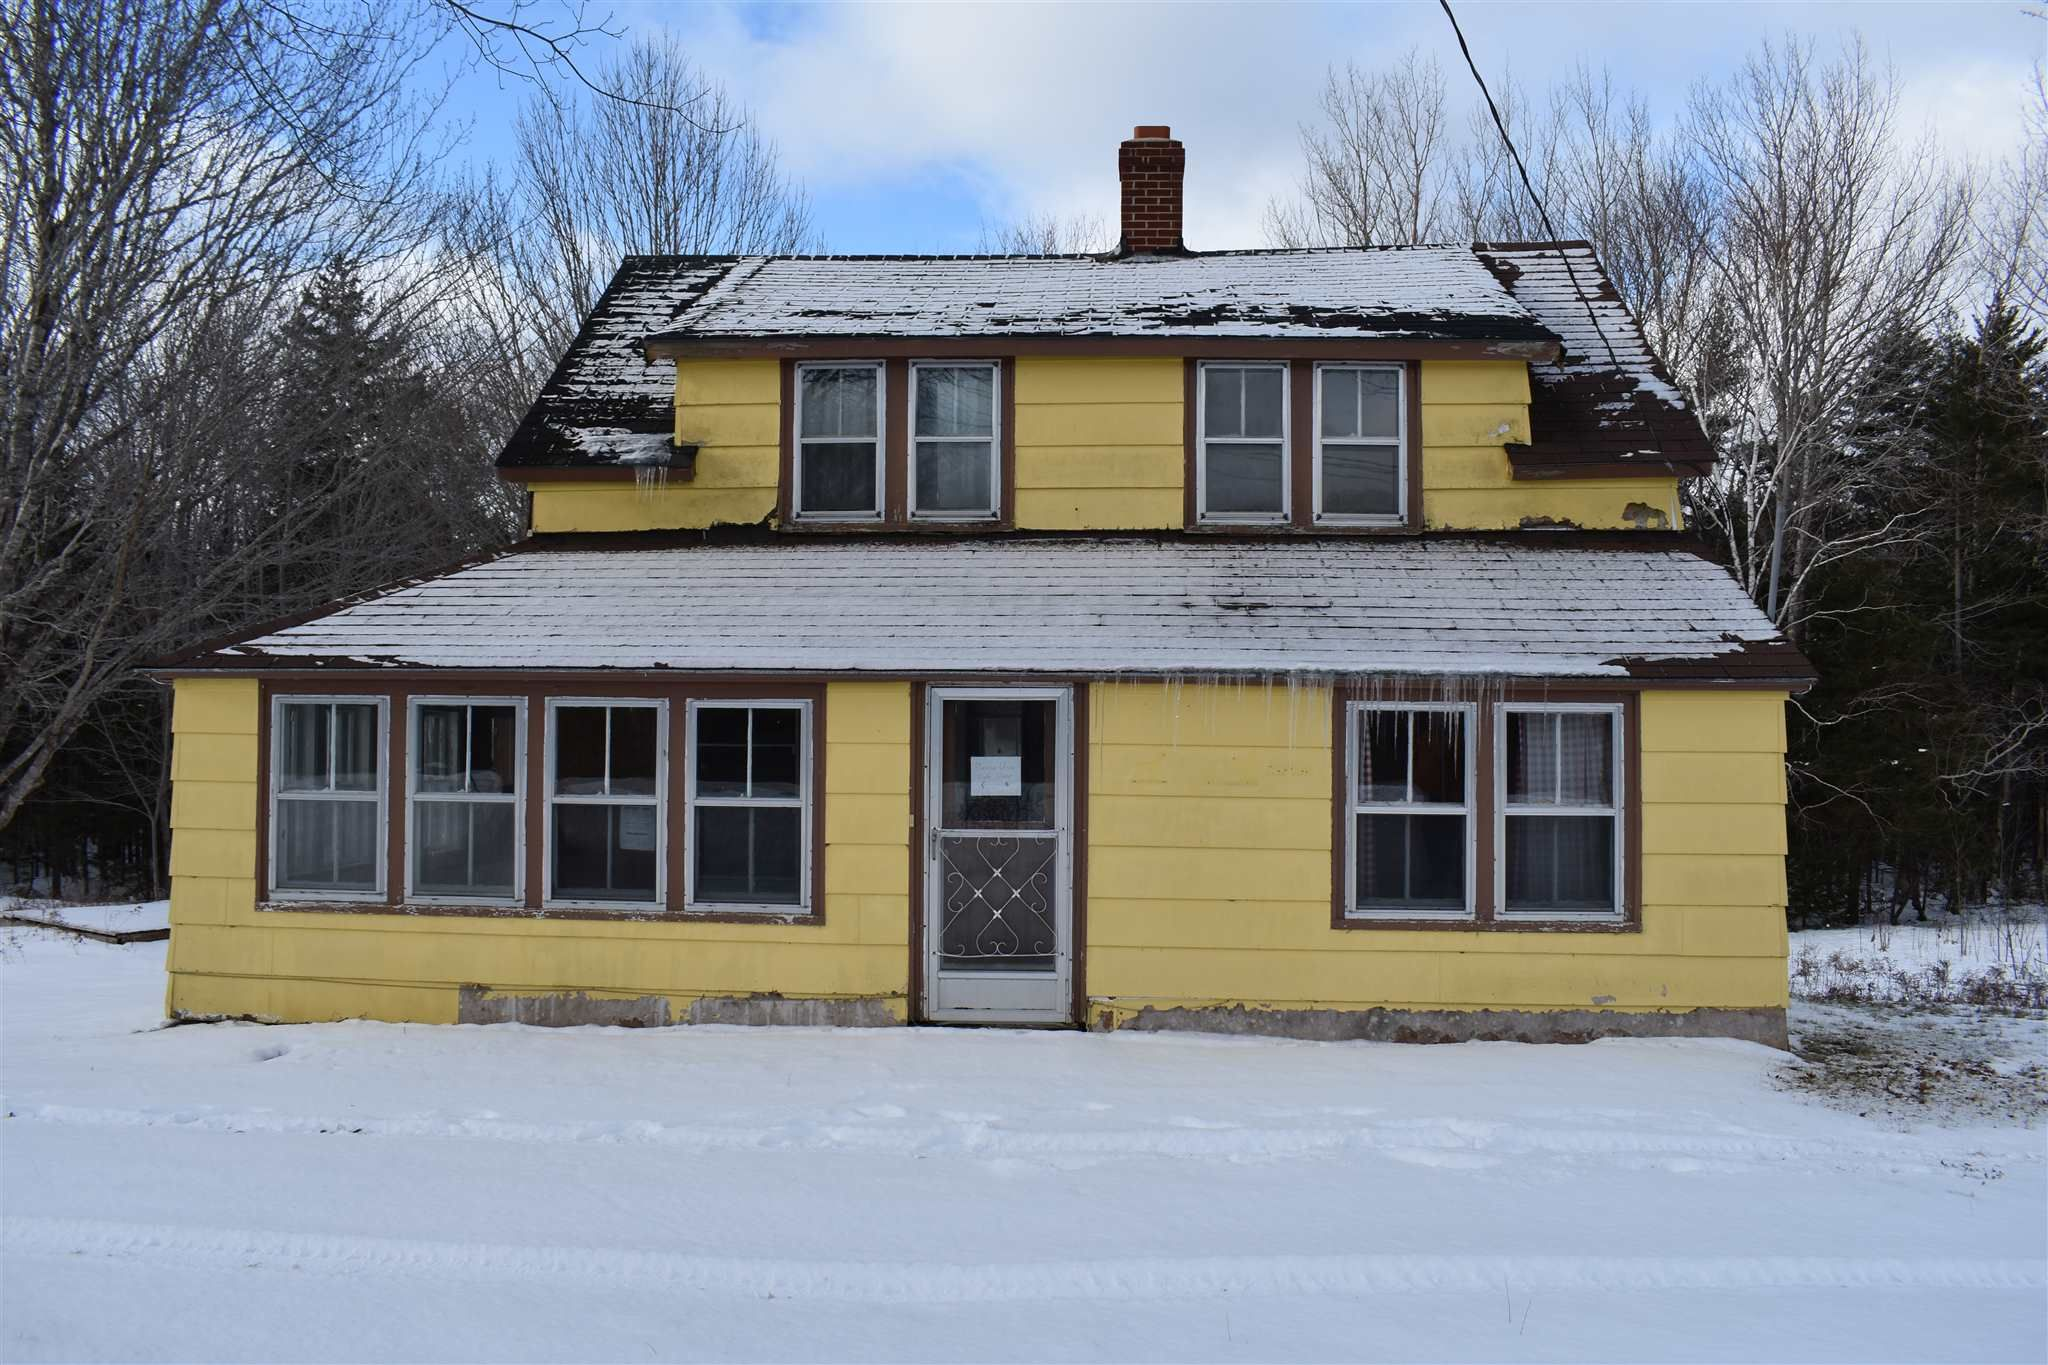 Main Photo: 1444 NORTH RANGE CROSS Road in South Range: 401-Digby County Residential for sale (Annapolis Valley)  : MLS®# 202103023